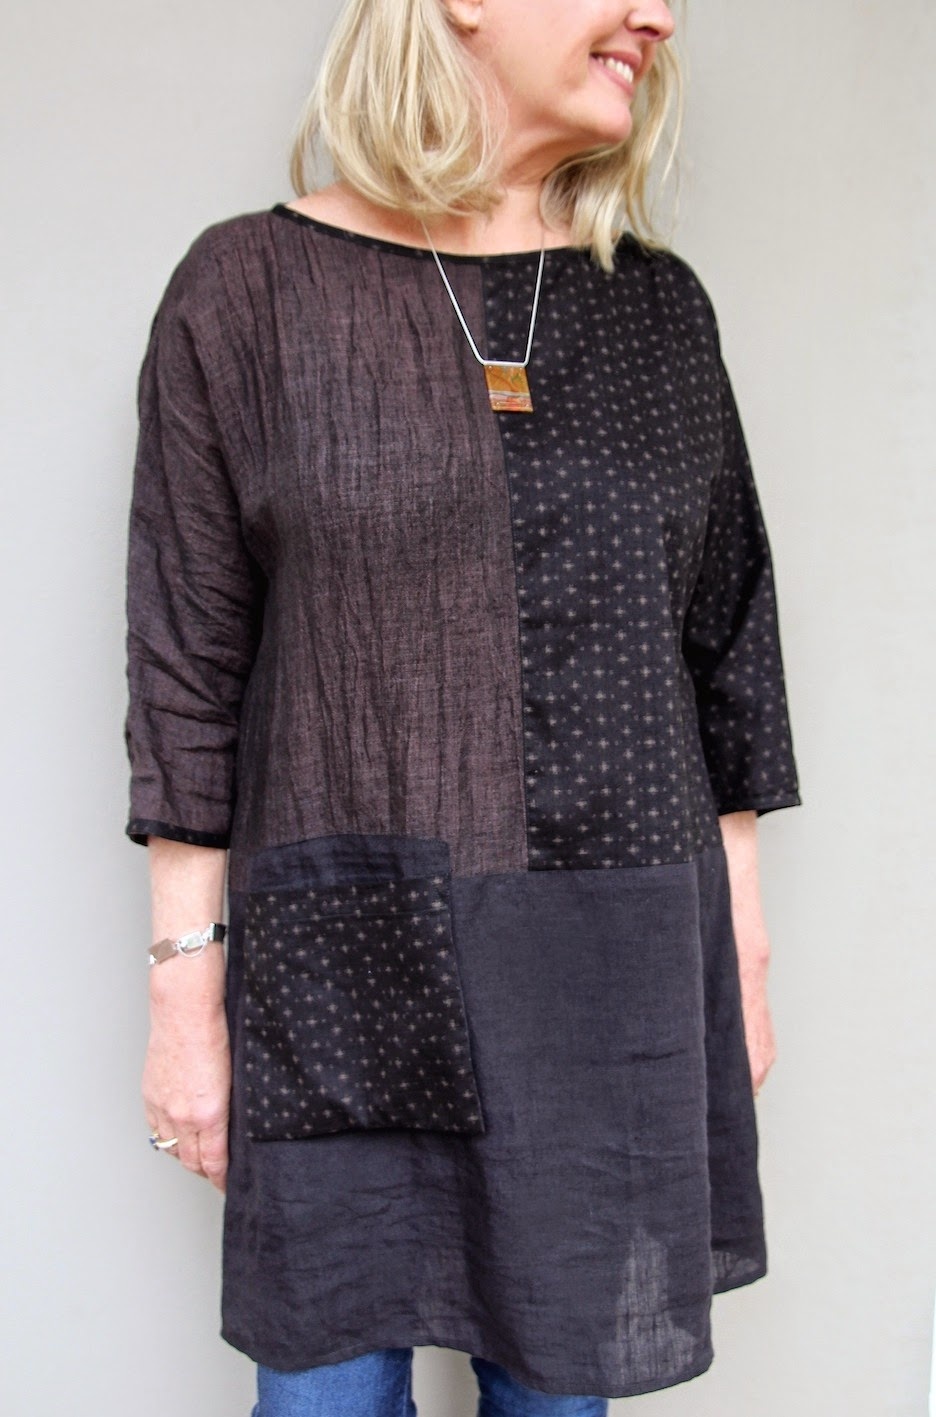 Our Top 10 Must Have Baby Items: Our NEW Pattern - The Ola Tunic Top!